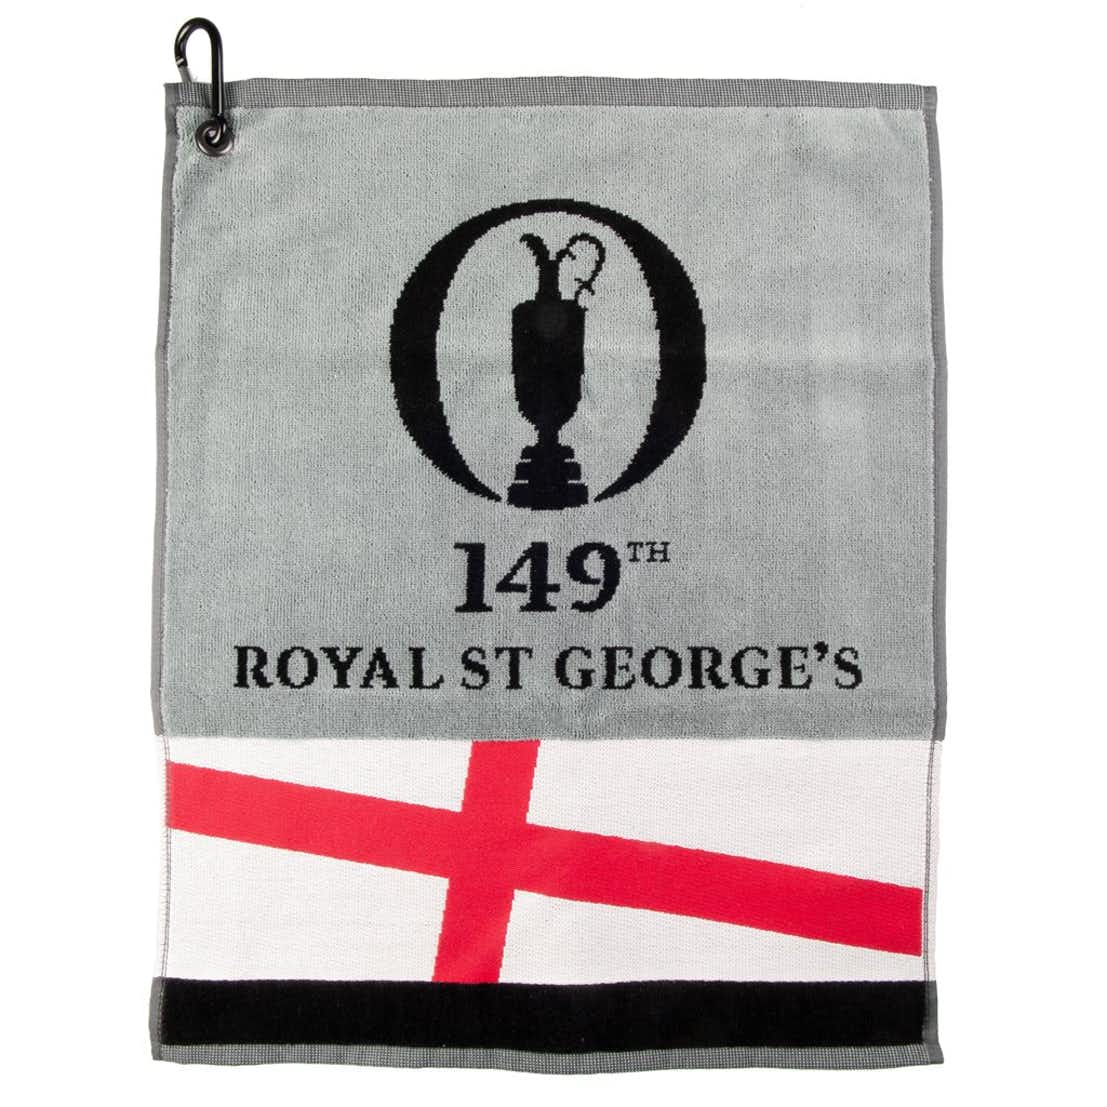 149th Royal St George's Woven Towel with Flag Band - Grey